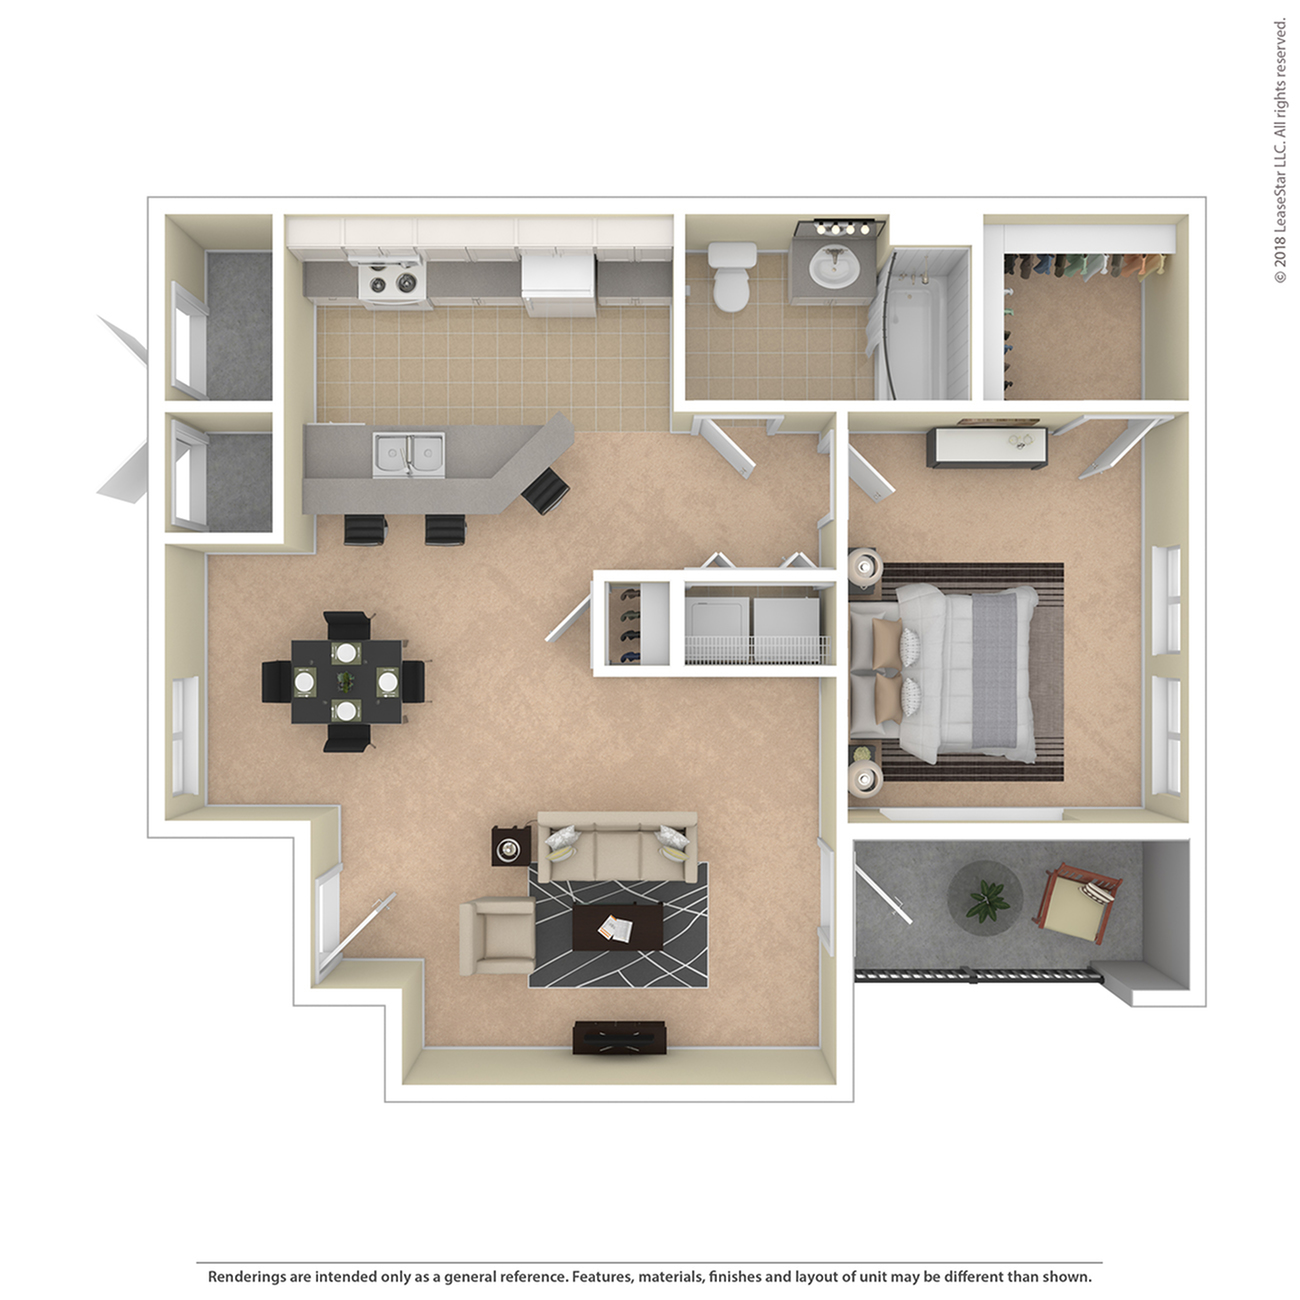 1 Bdrm Floor Plan | 3 Bedroom Apartments For Rent In Colorado Springs | Willows at Printers Park